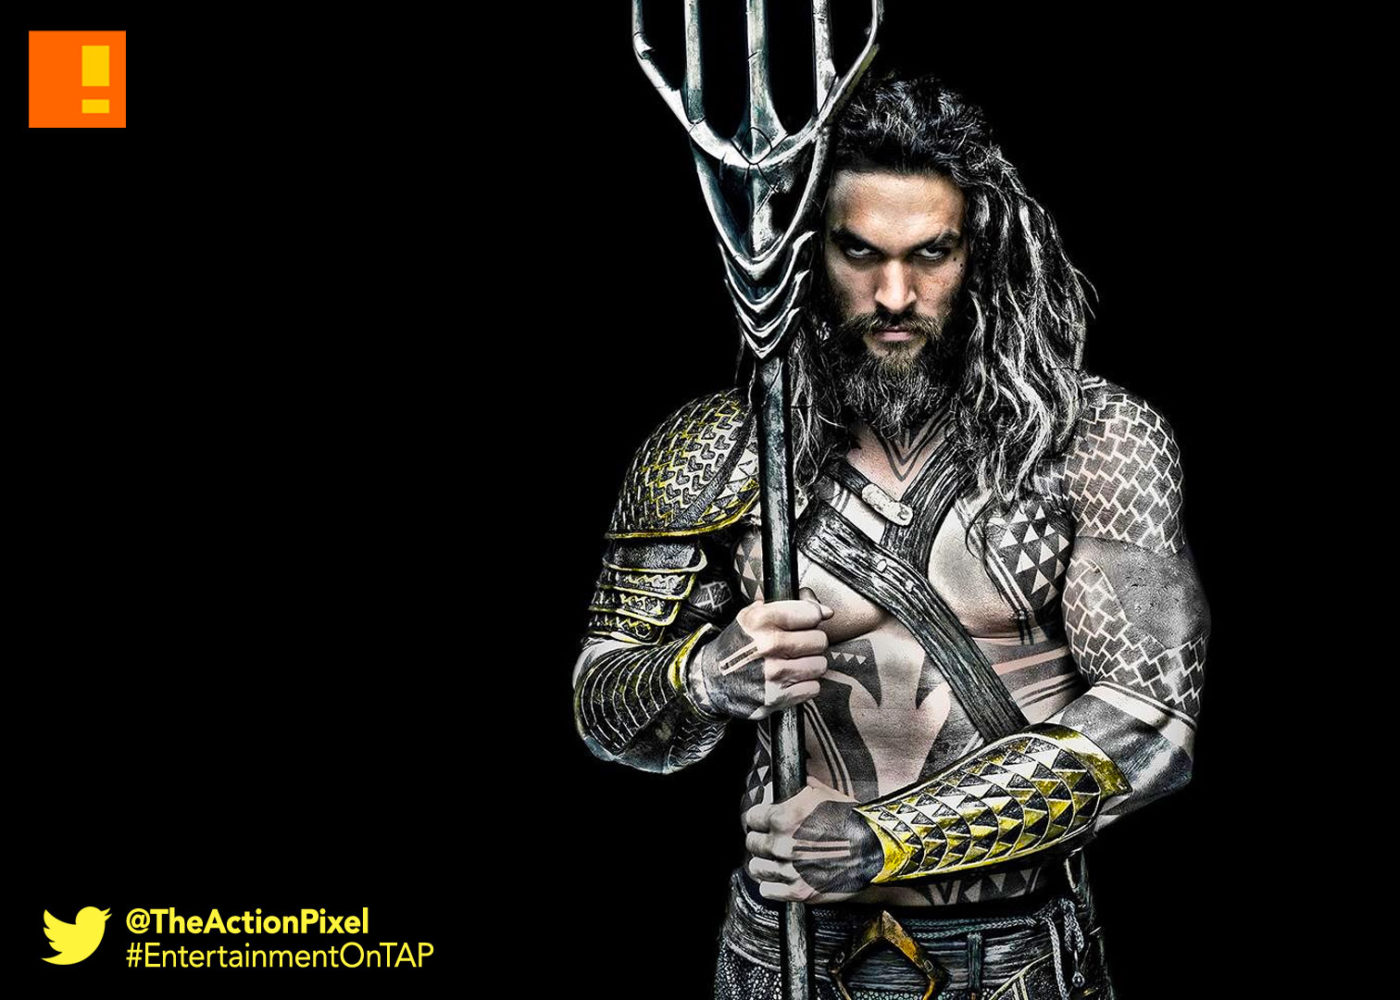 the action pixel, entertainment on tap, jason momoa, aquaman, arthur CURRY, dc comics, dc films, justice league,